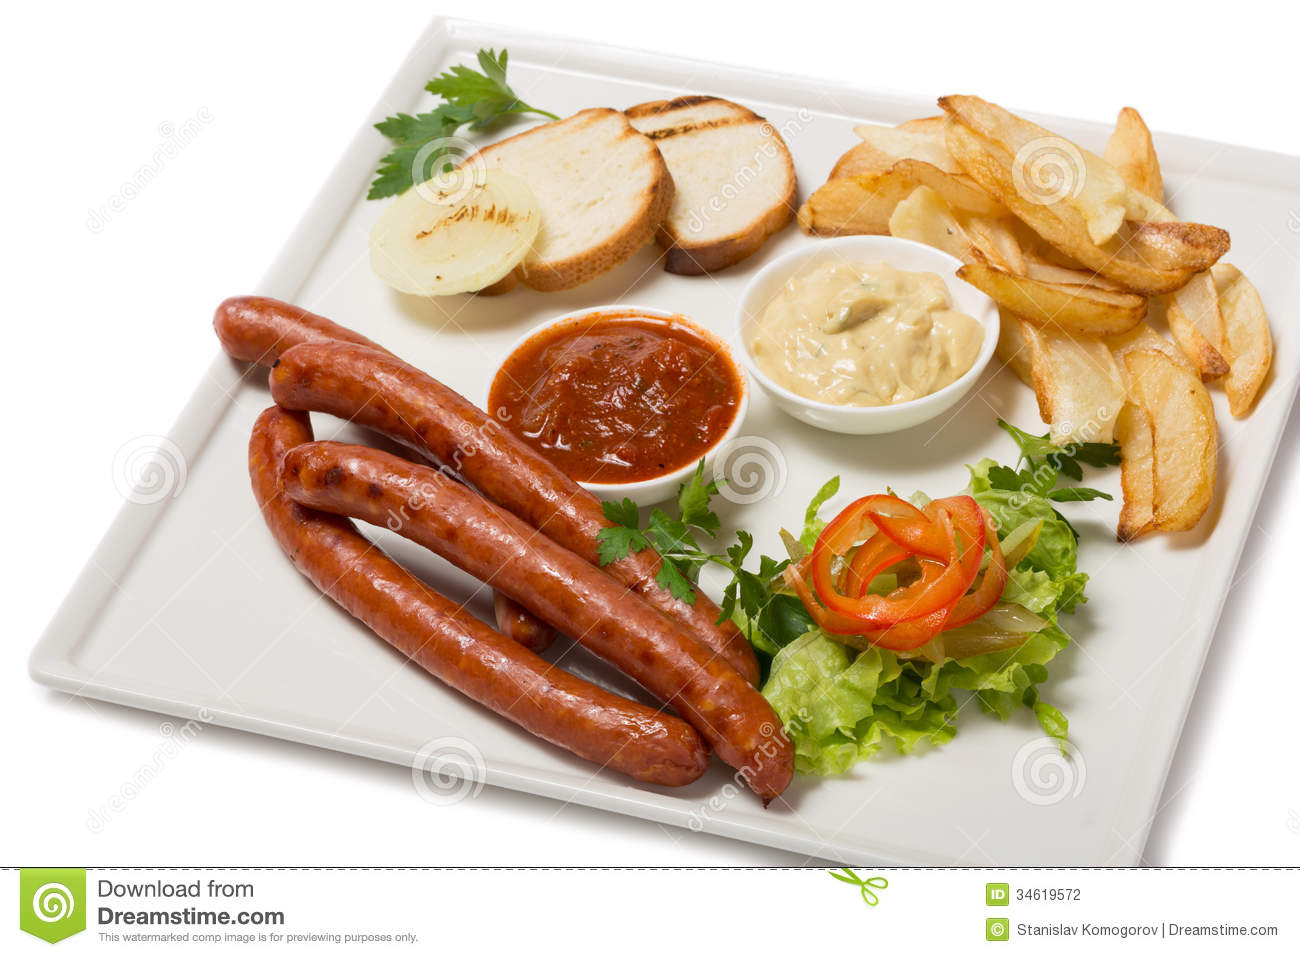 Spicy smoked sausage with cheese and fry potatoes in a pan, and salad.